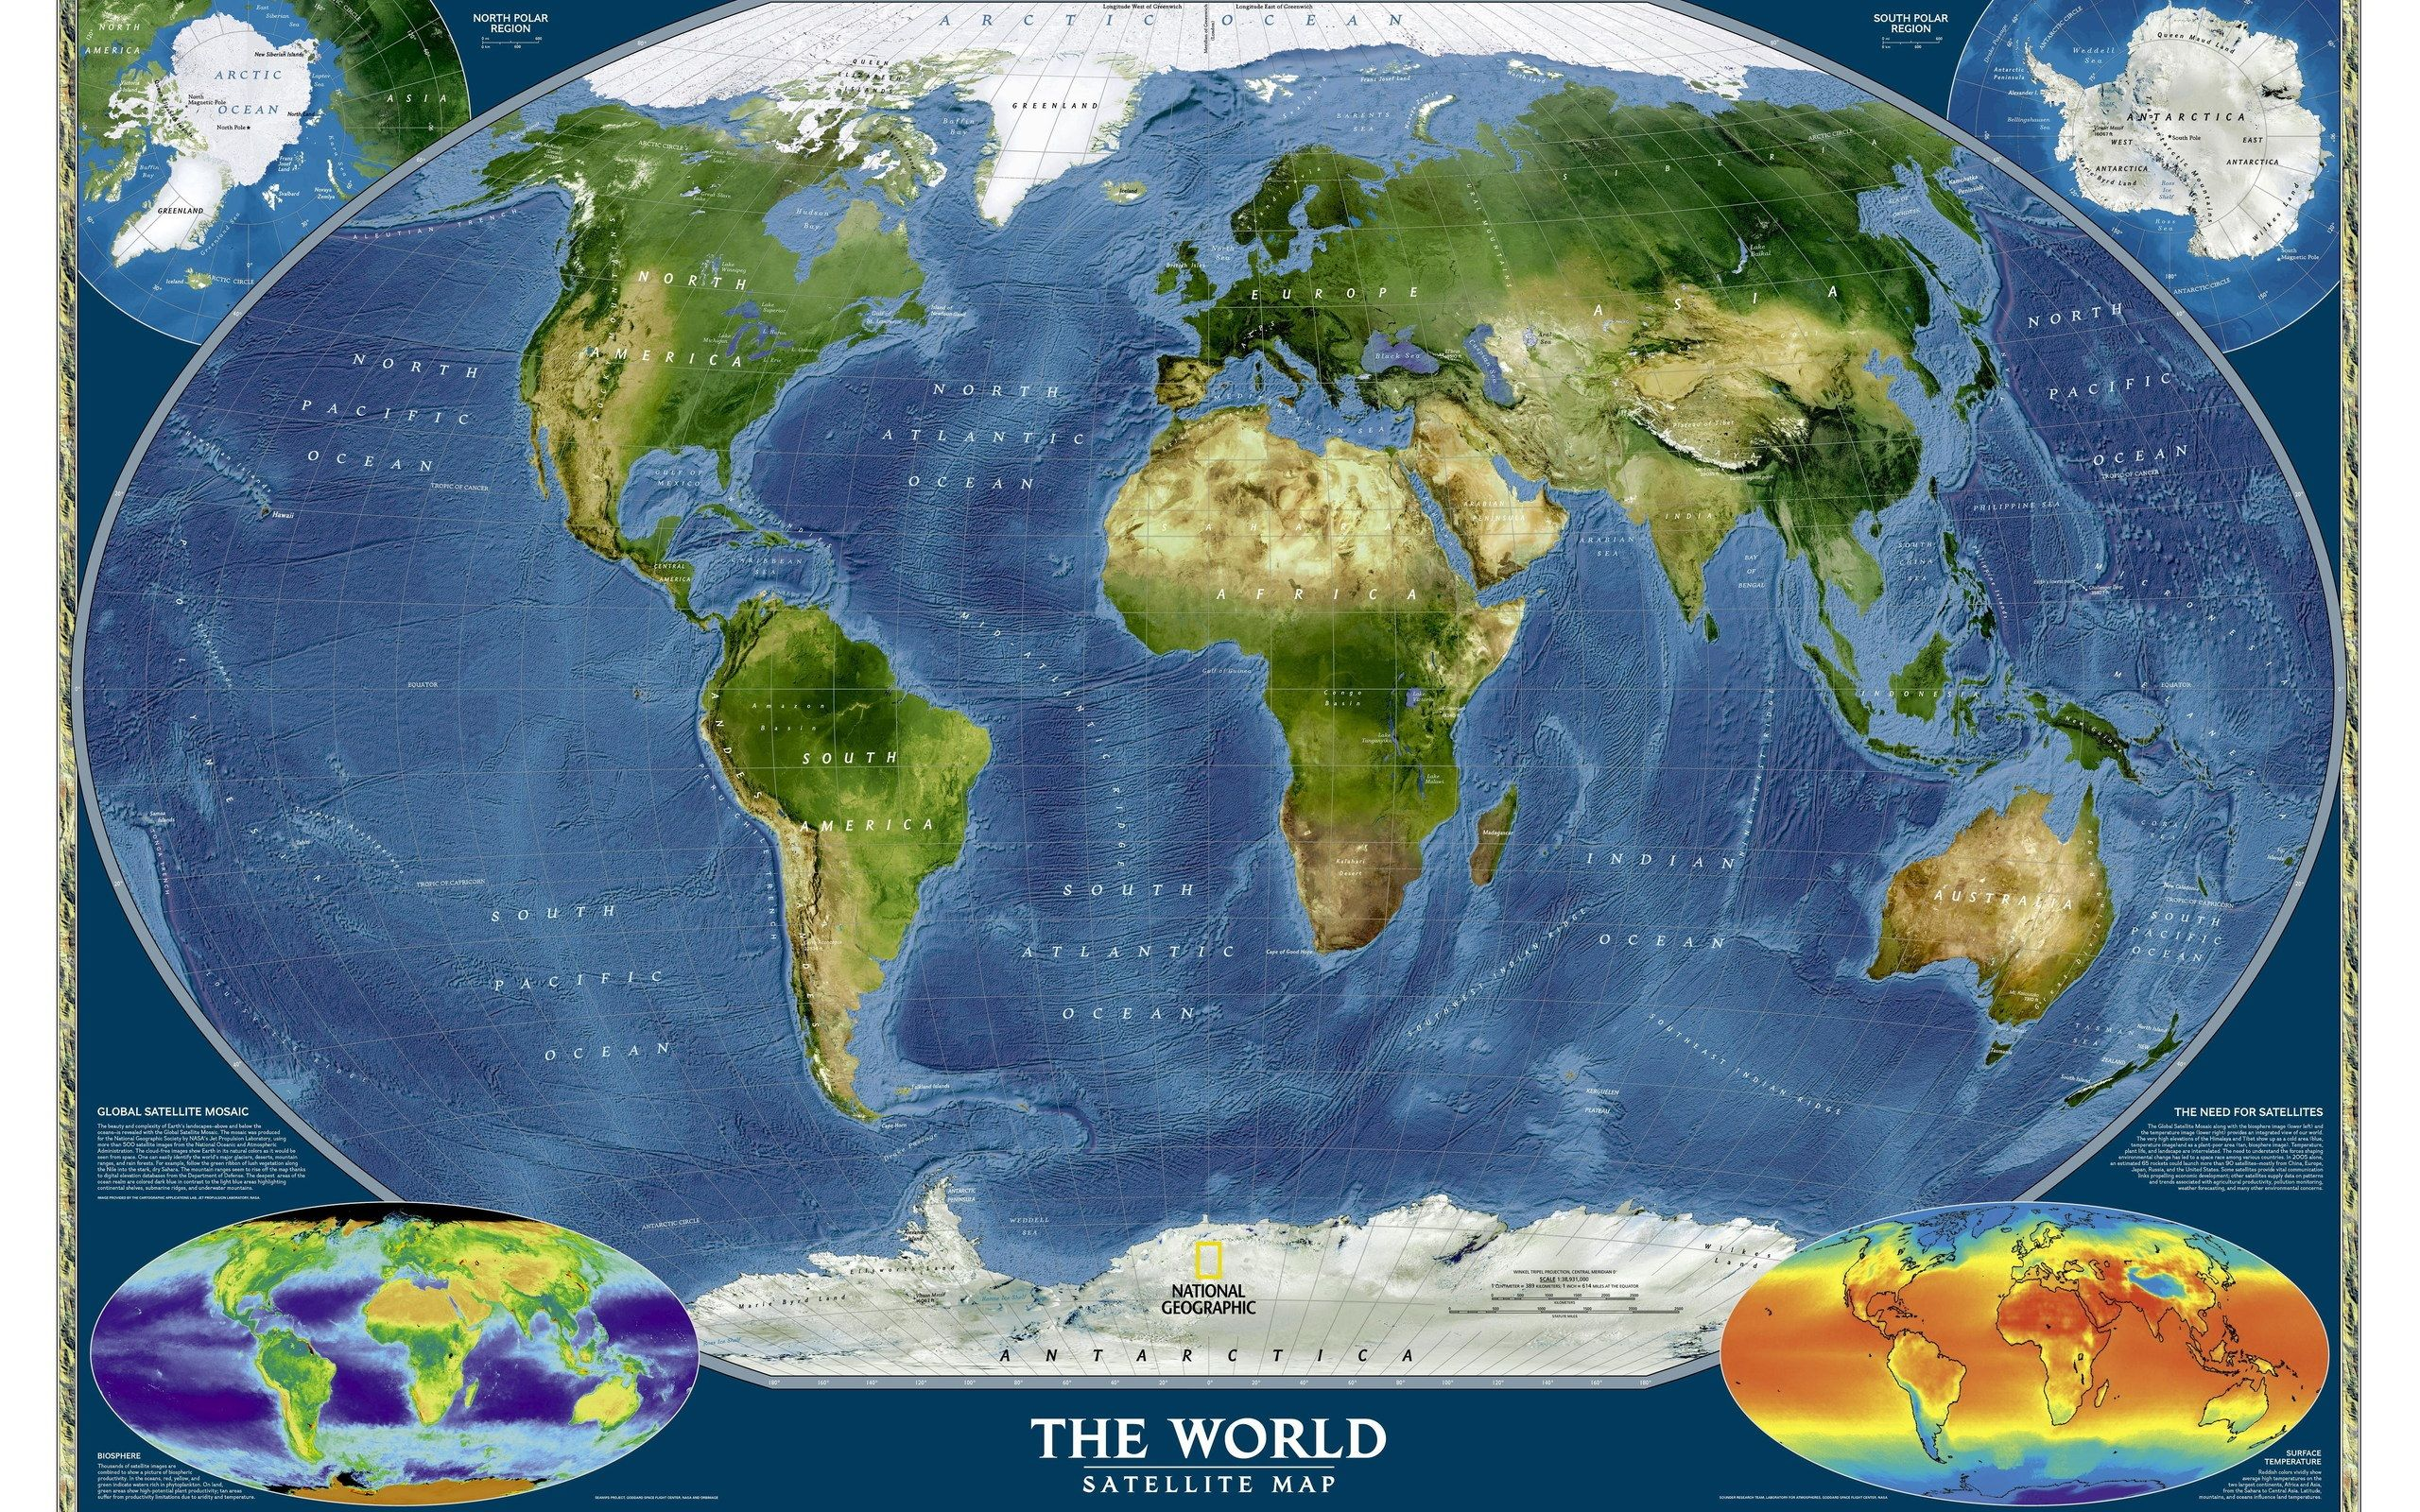 世界衛星地圖 X World Map Pinterest - World satellite map 2014